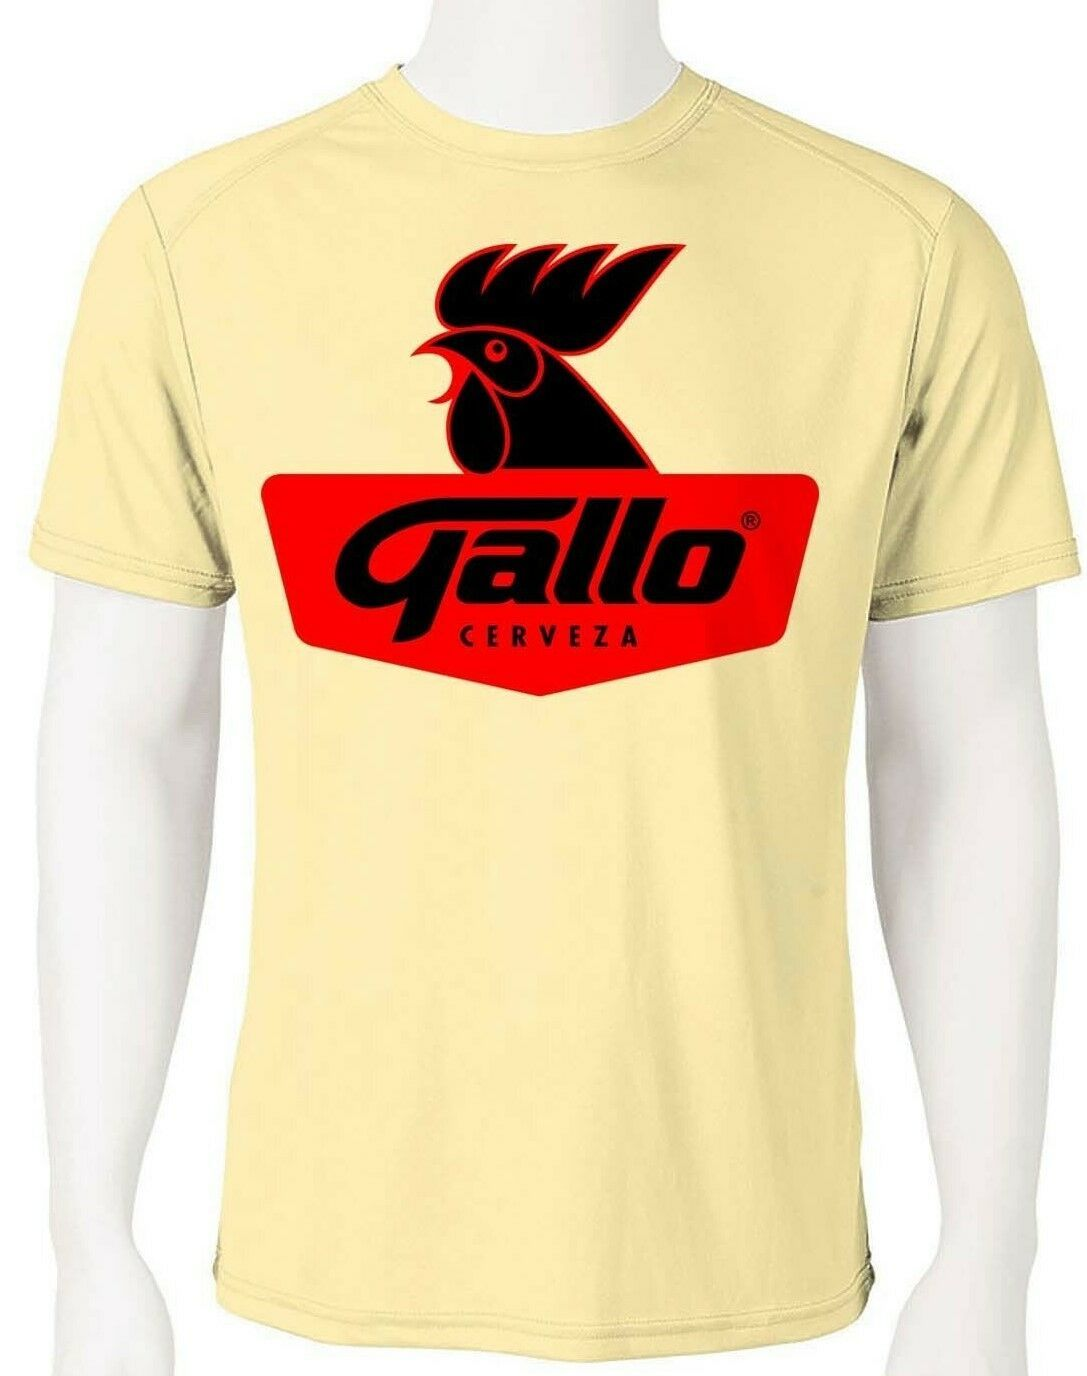 Gallo Dri Fit graphic Tshirt moisture wicking beer beach sun protection Sun Shir